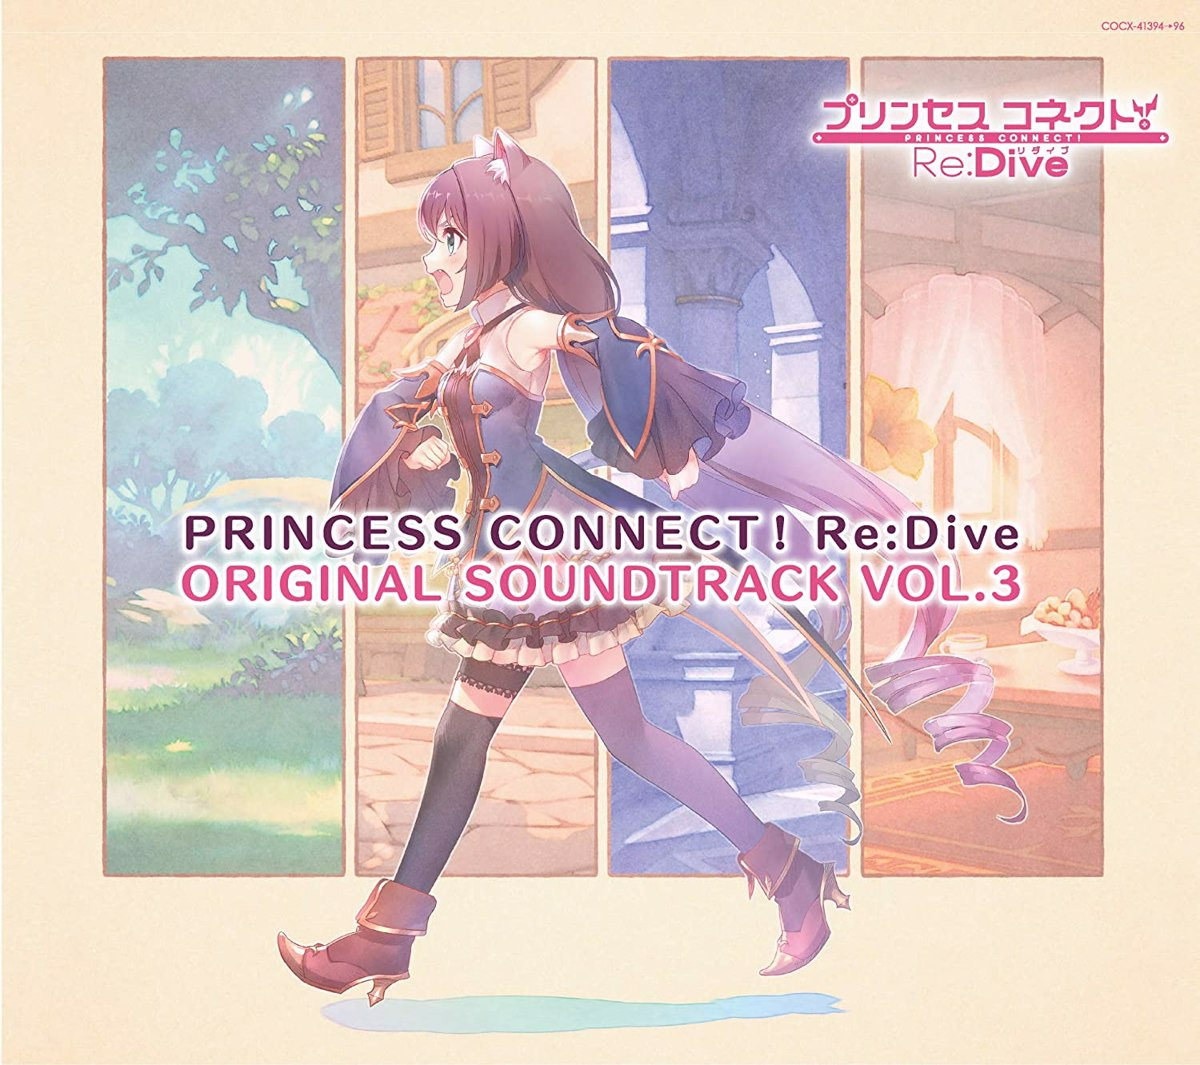 [210217]プリンセスコネクト!PRINCESS CONNECT! Re:Dive ORIGINAL SOUNDTRACK VOL.3[320K]